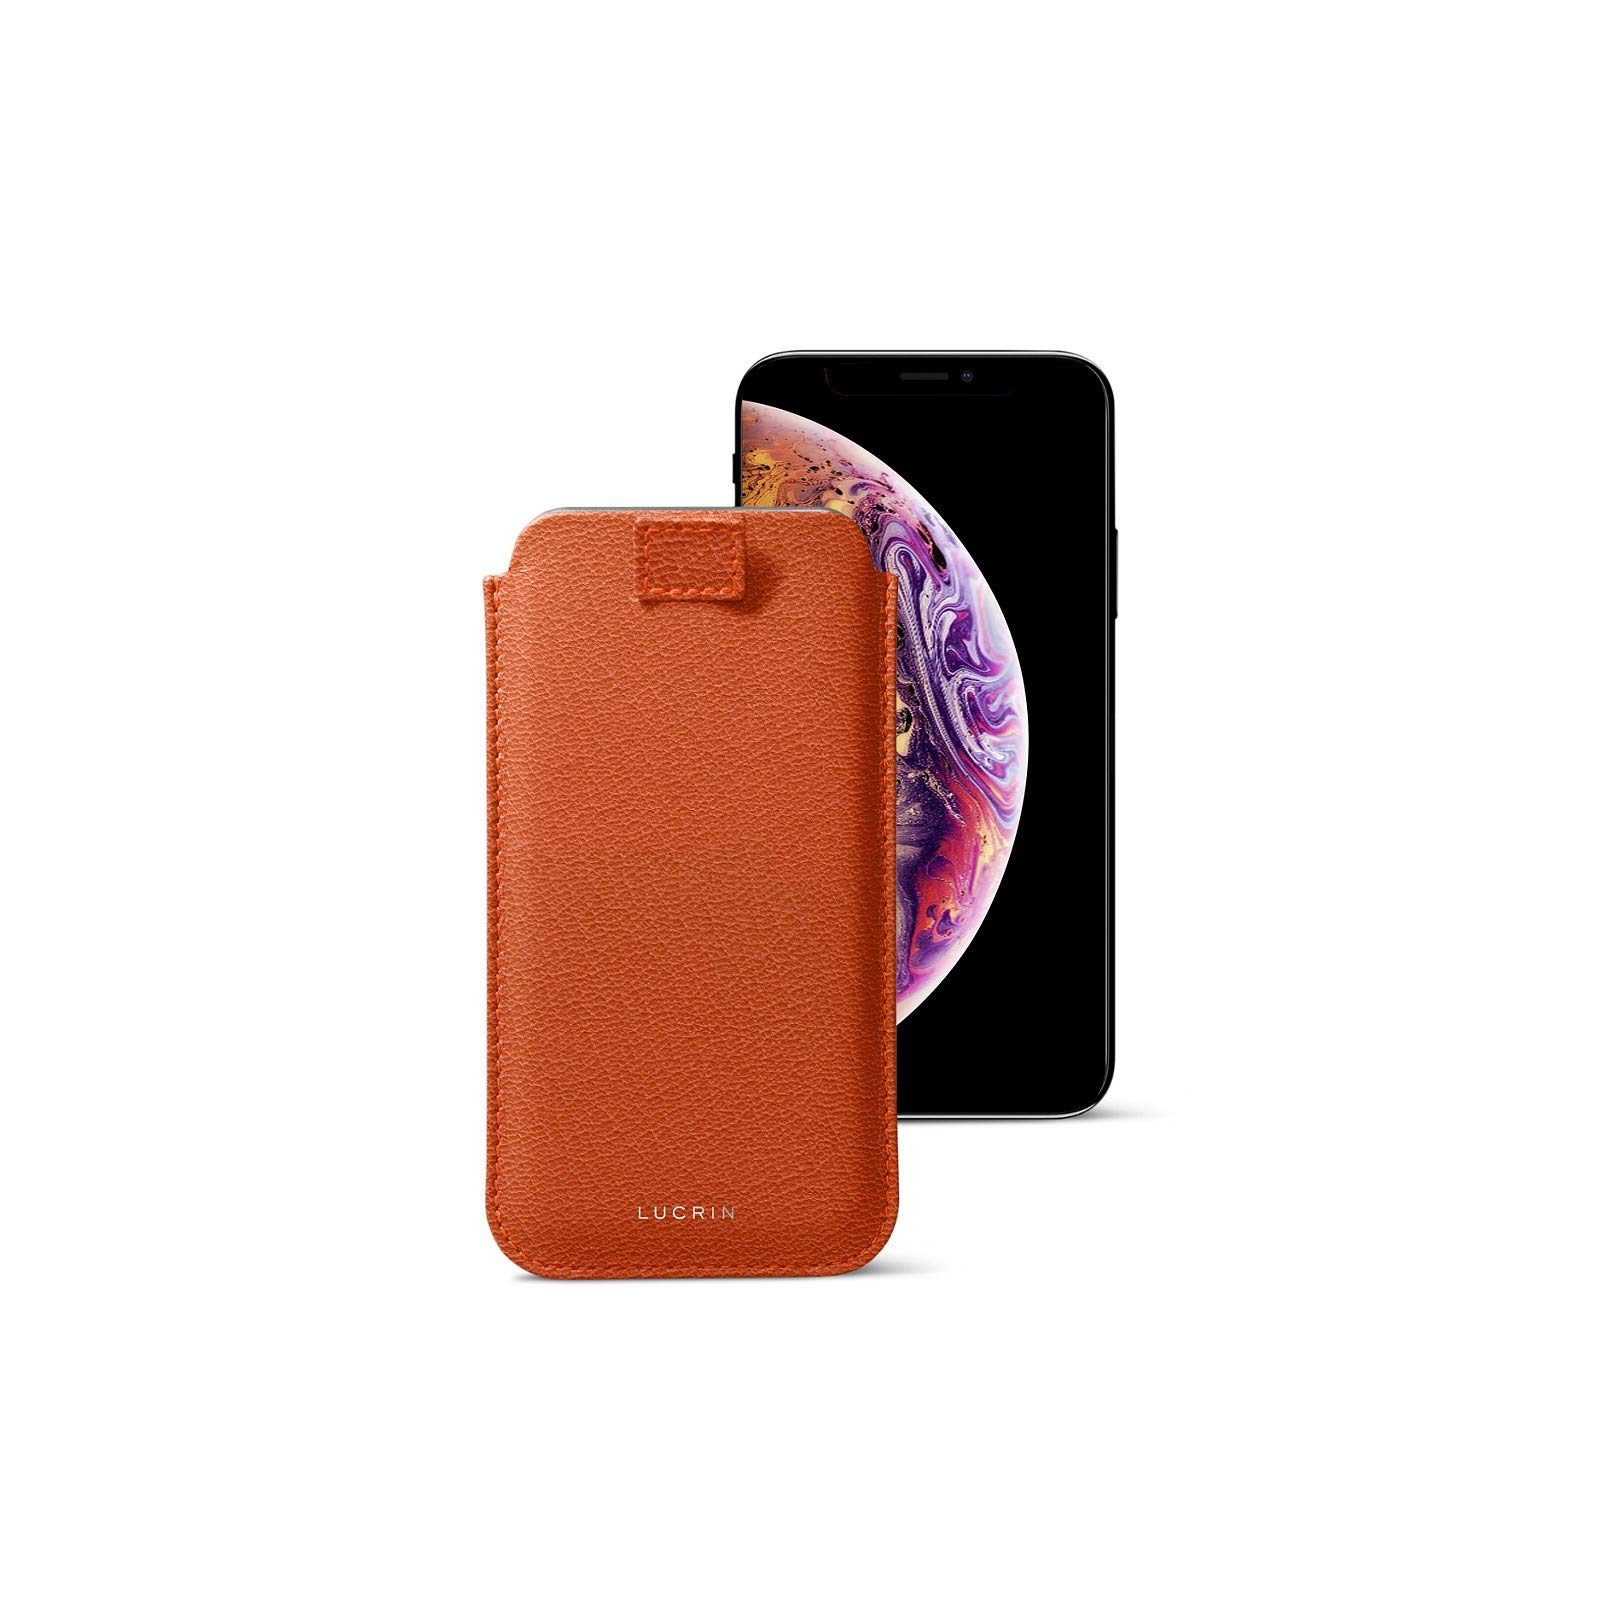 Lucrin - Pull Tab Slim Sleeve Case Compatible with iPhone Xs/iPhone X and Wireless Charging - Orange - Goat Leather